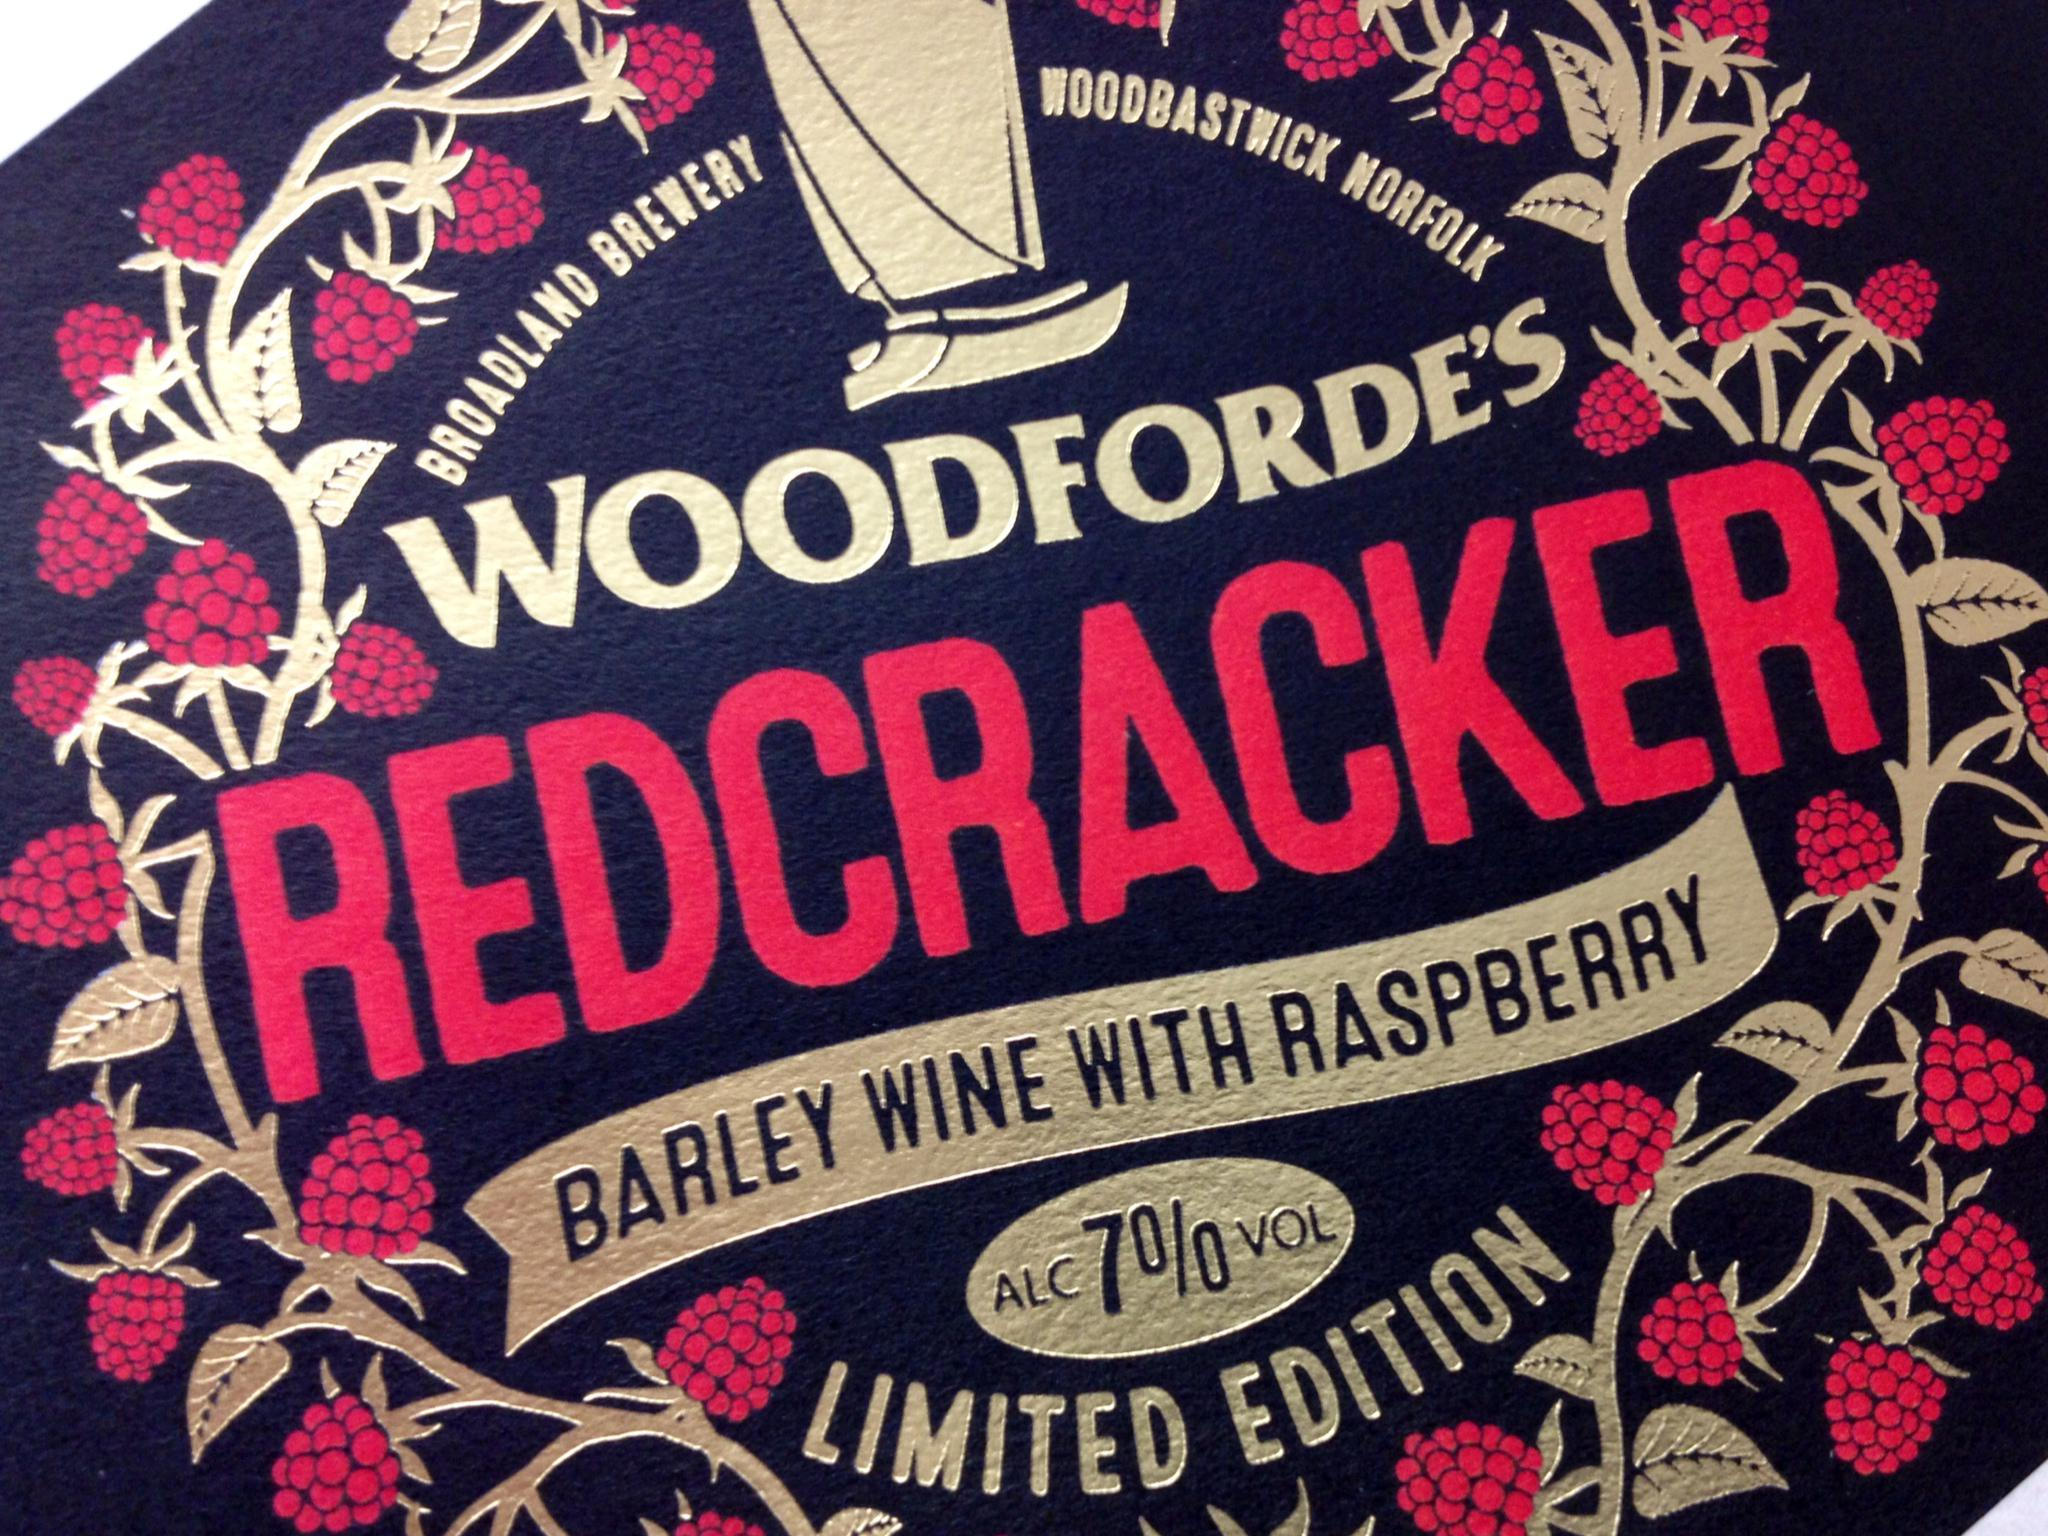 Coming soon... #redcracker #newbrew http://t.co/gGDxlvuOin